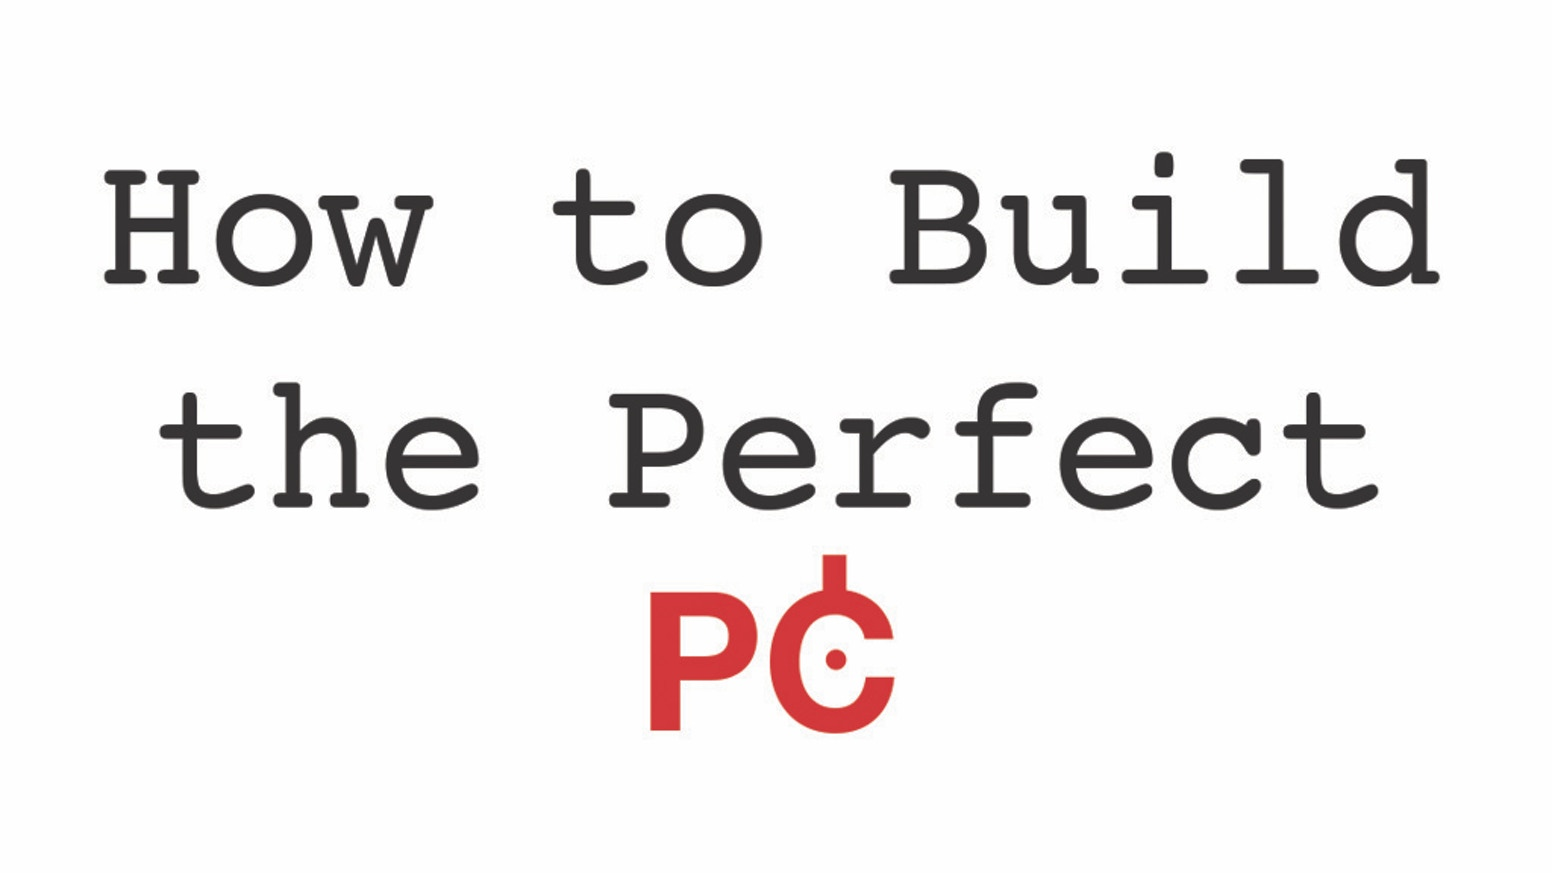 How To Build The Perfect PC by Joshua Williams — Kickstarter